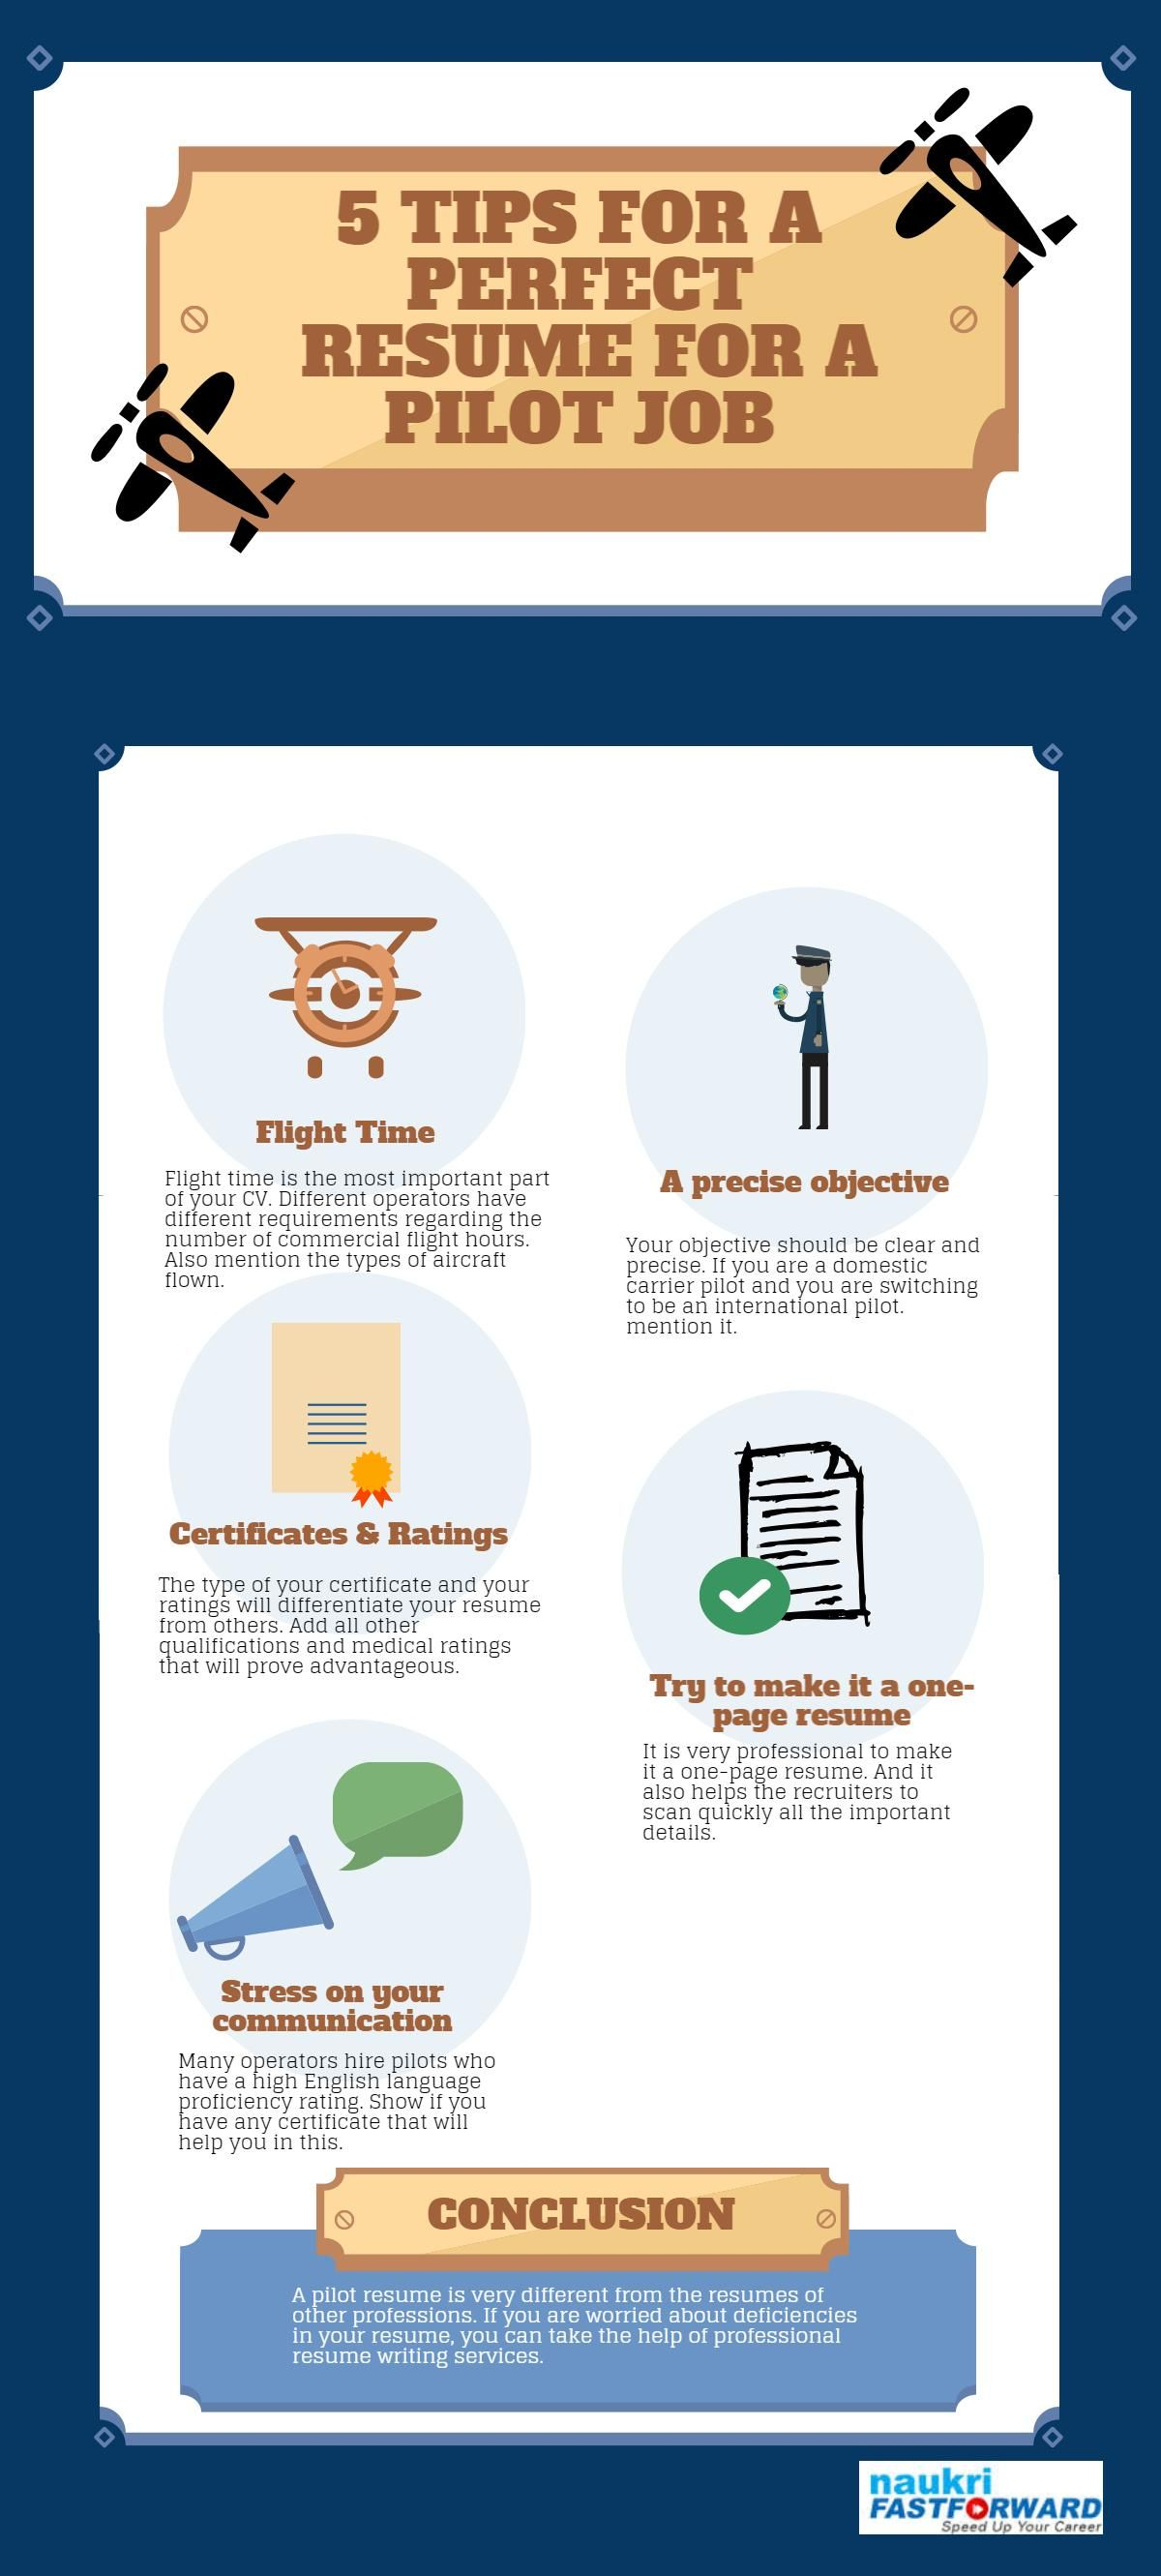 tips for a perfect resume for a pilot job airlinecareers